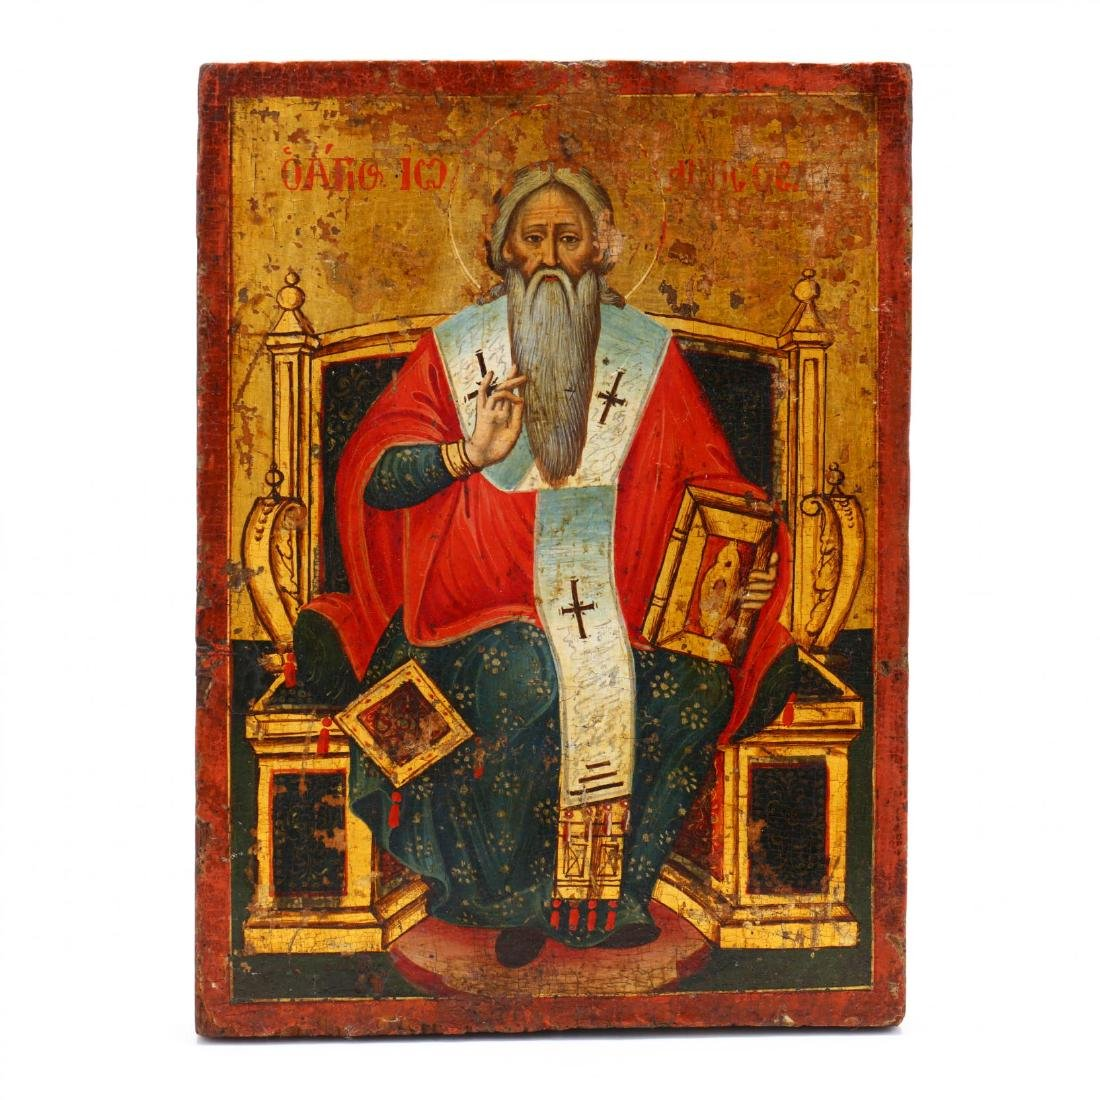 An Antique Icon, Possibly Saint Clement of Ohrid